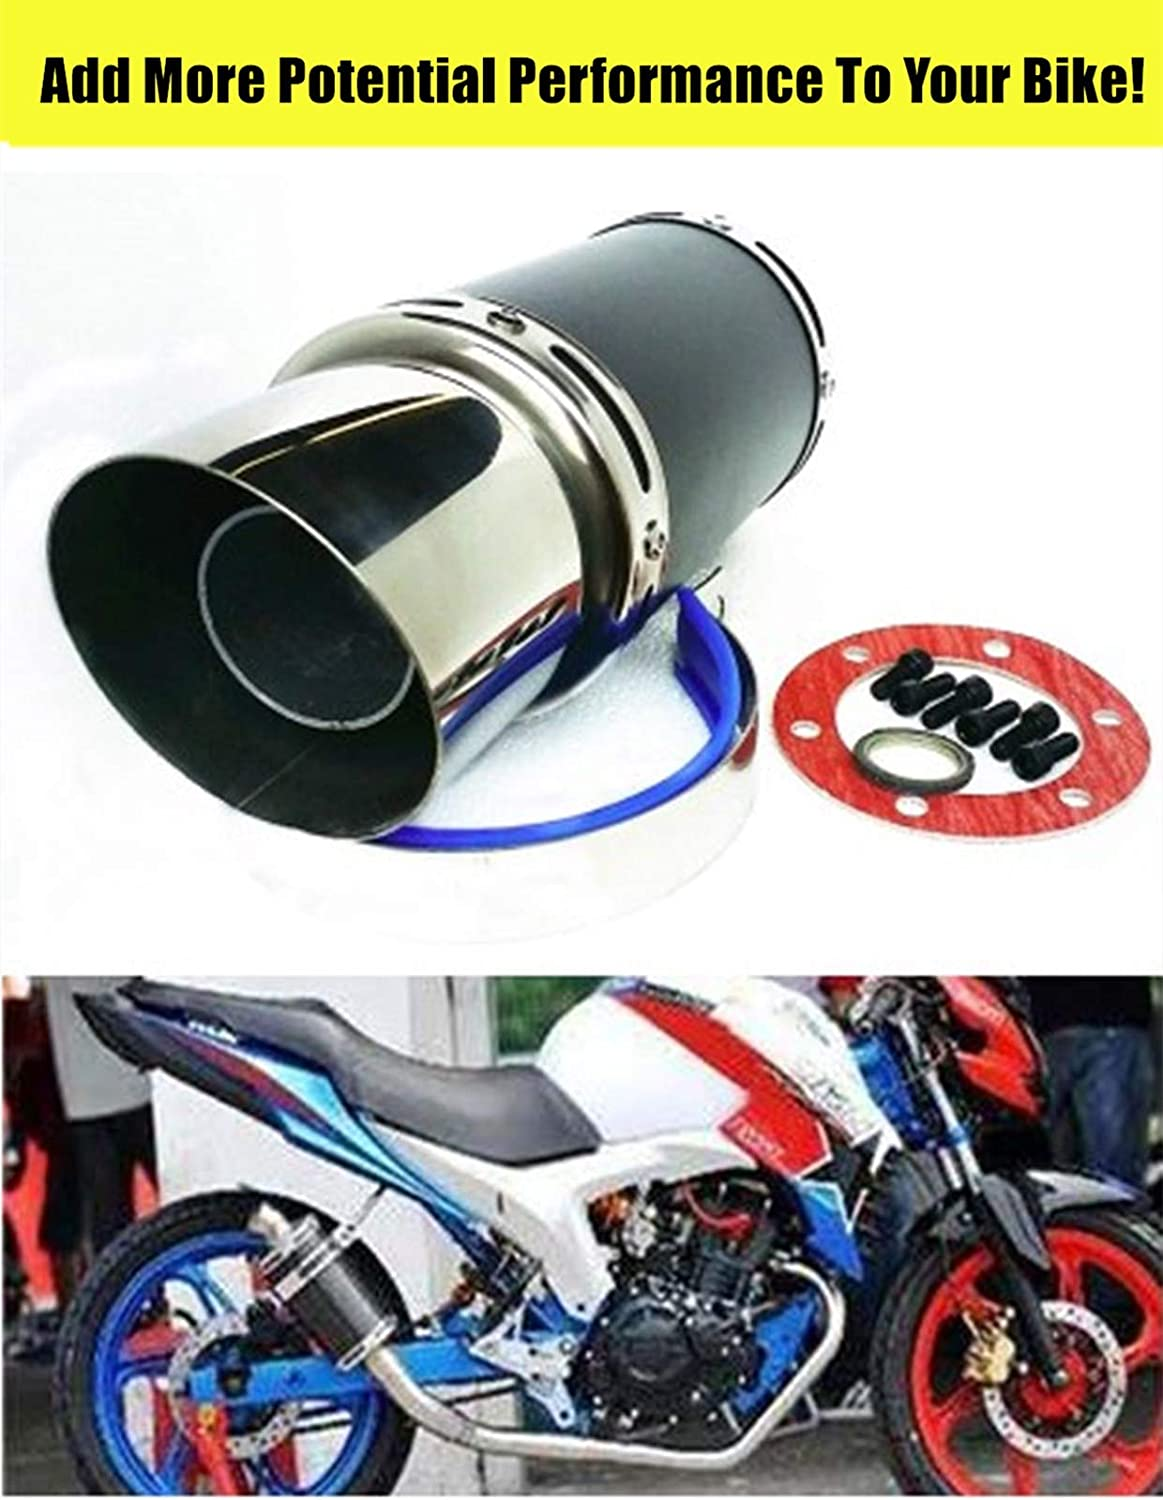 Keelexsta Exhuast Muffler Pipe System for GY6 50cc-400cc High Performance 4 Stroke Scooter Moped ATV Go Kart-Black